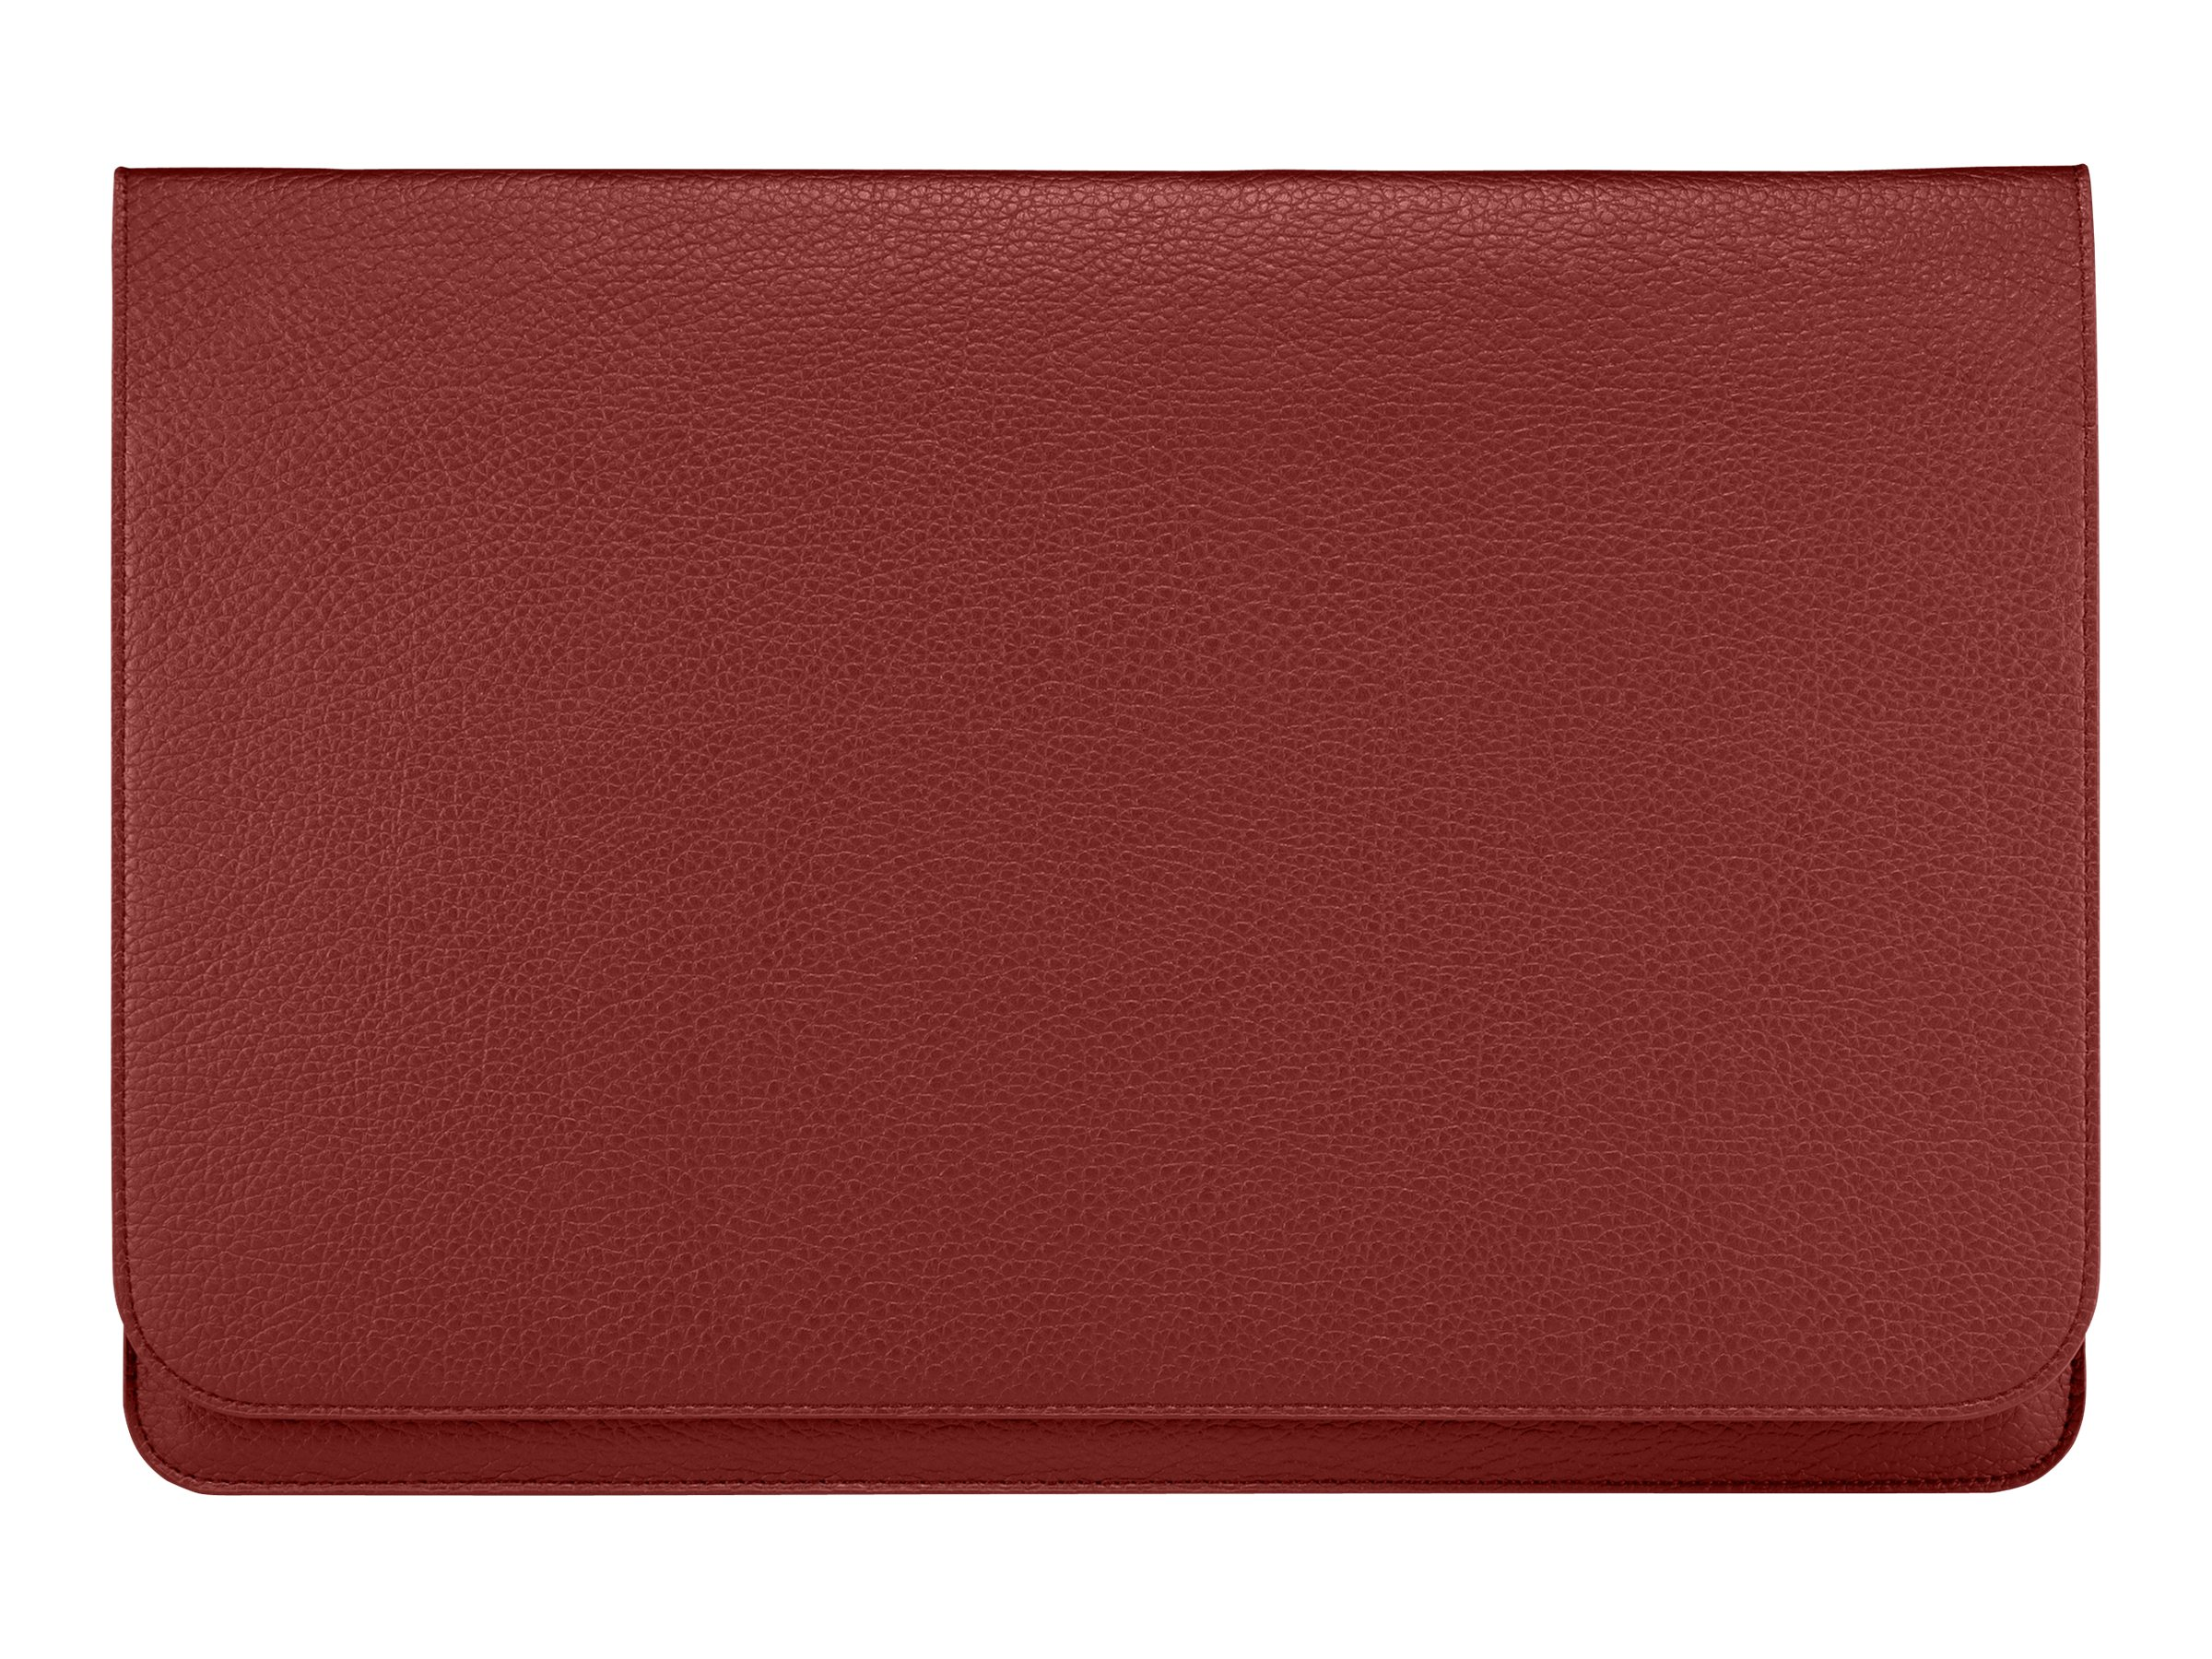 Samsung Ultrabook 13.3 Leather Pouch, Red, AA-BS8N13R/US